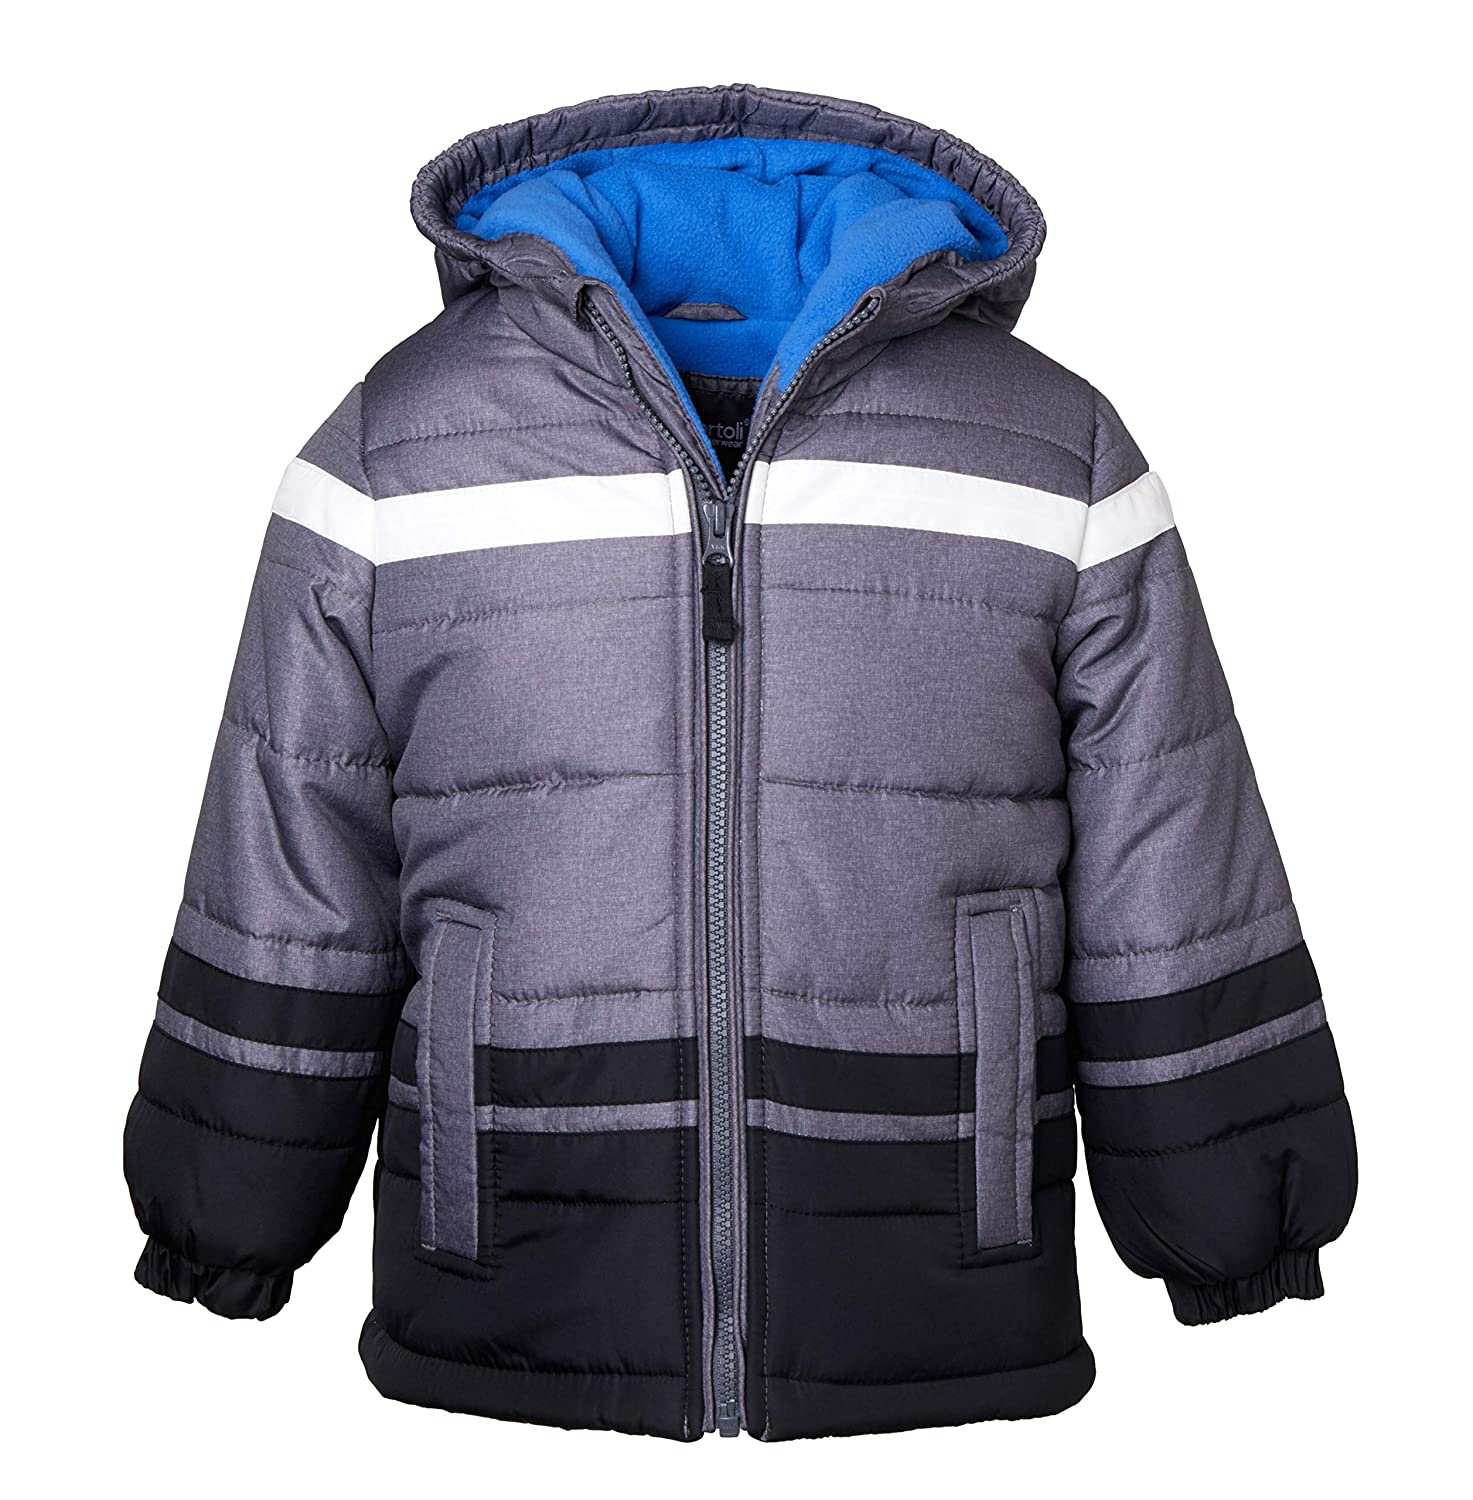 Sportoli Boys' Fleece Lined Hooded Colorblock Winter Puffer Bubble Jacket Coat